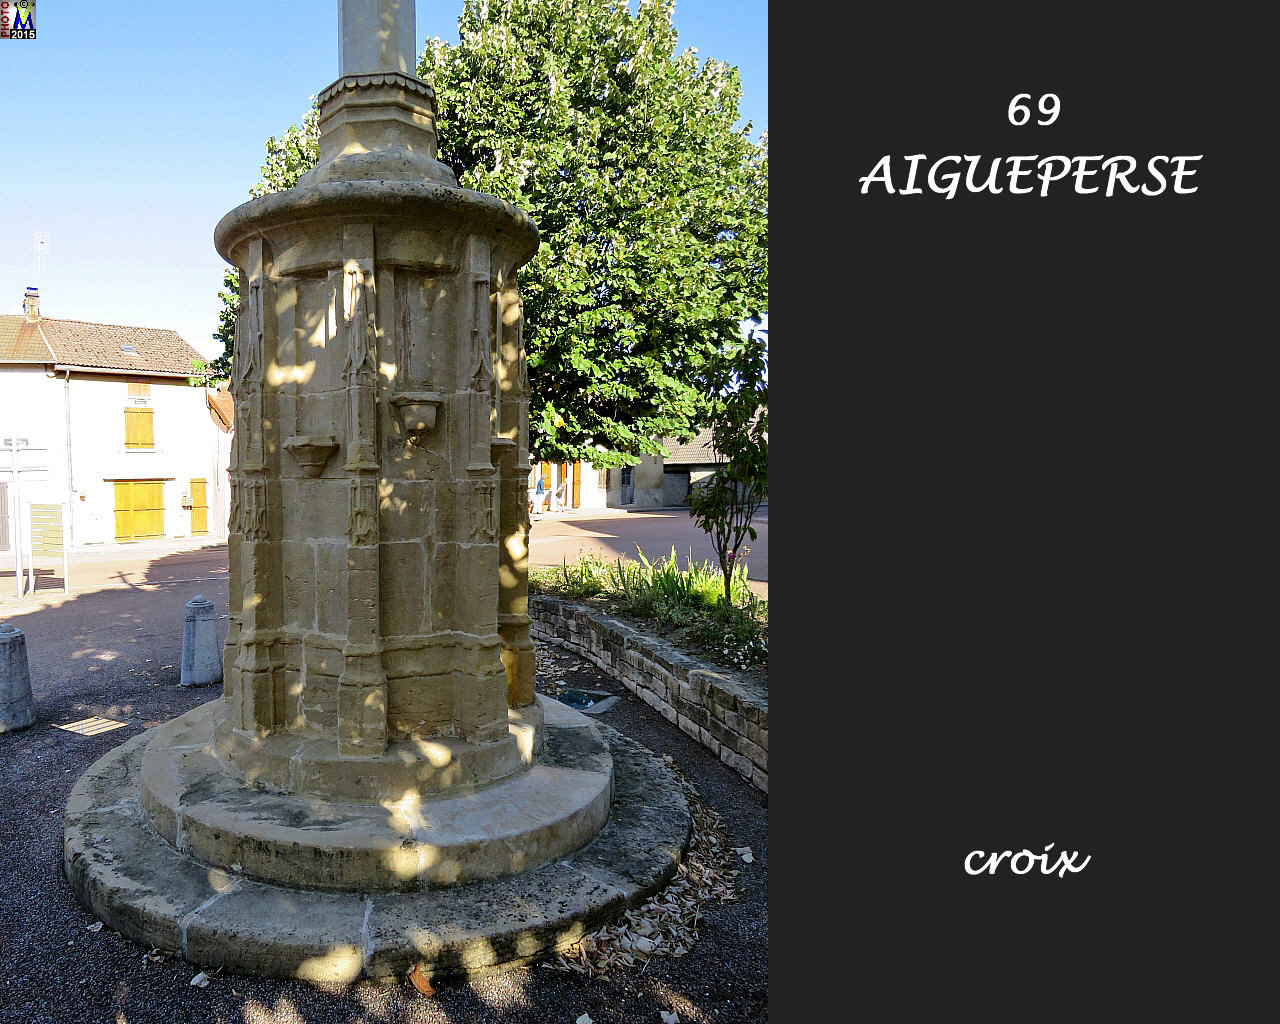 69AIGUEPERSE_croix_102.jpg